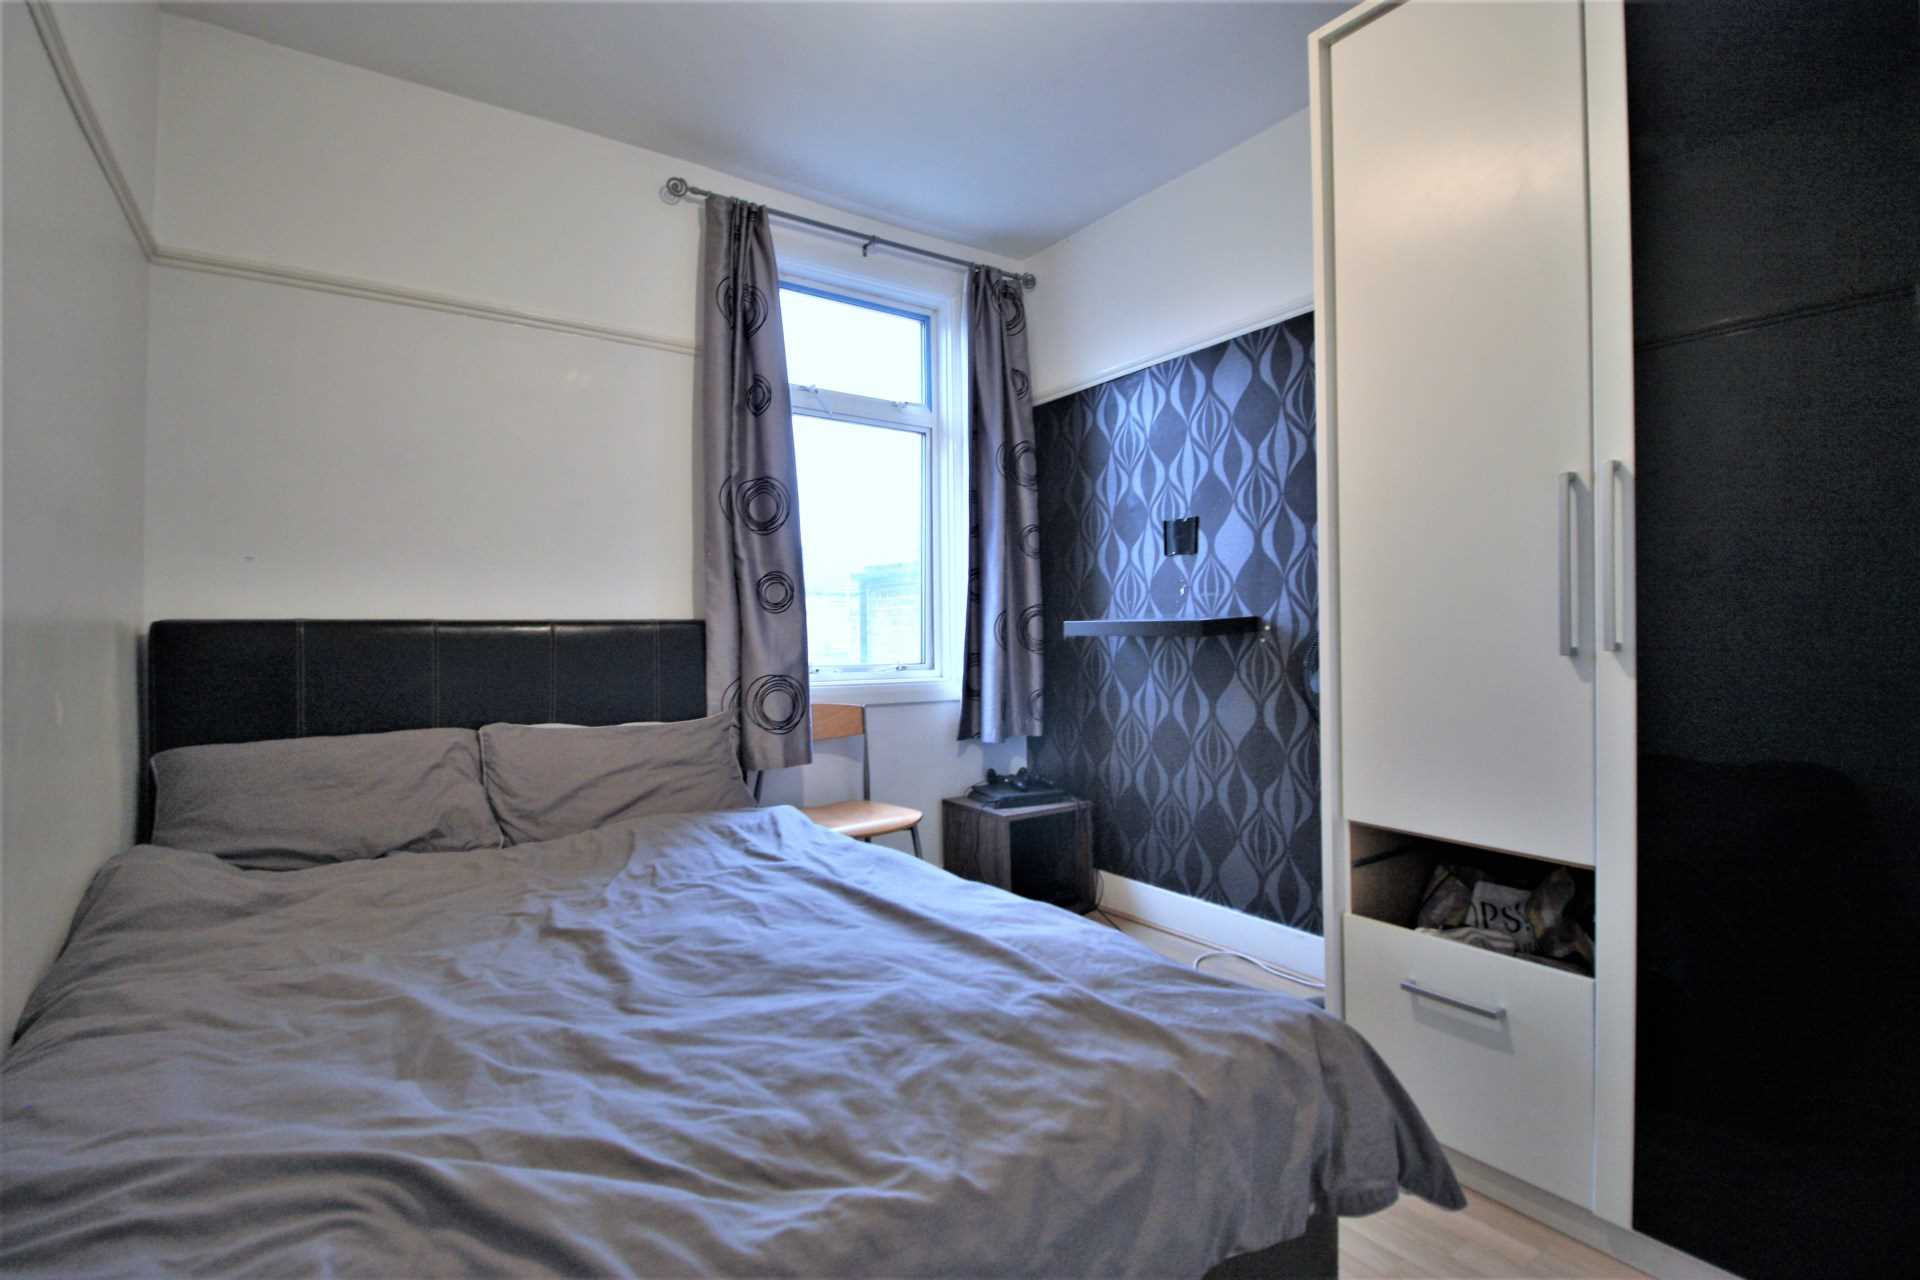 Studley Road, Forest Gate, E7, Image 8